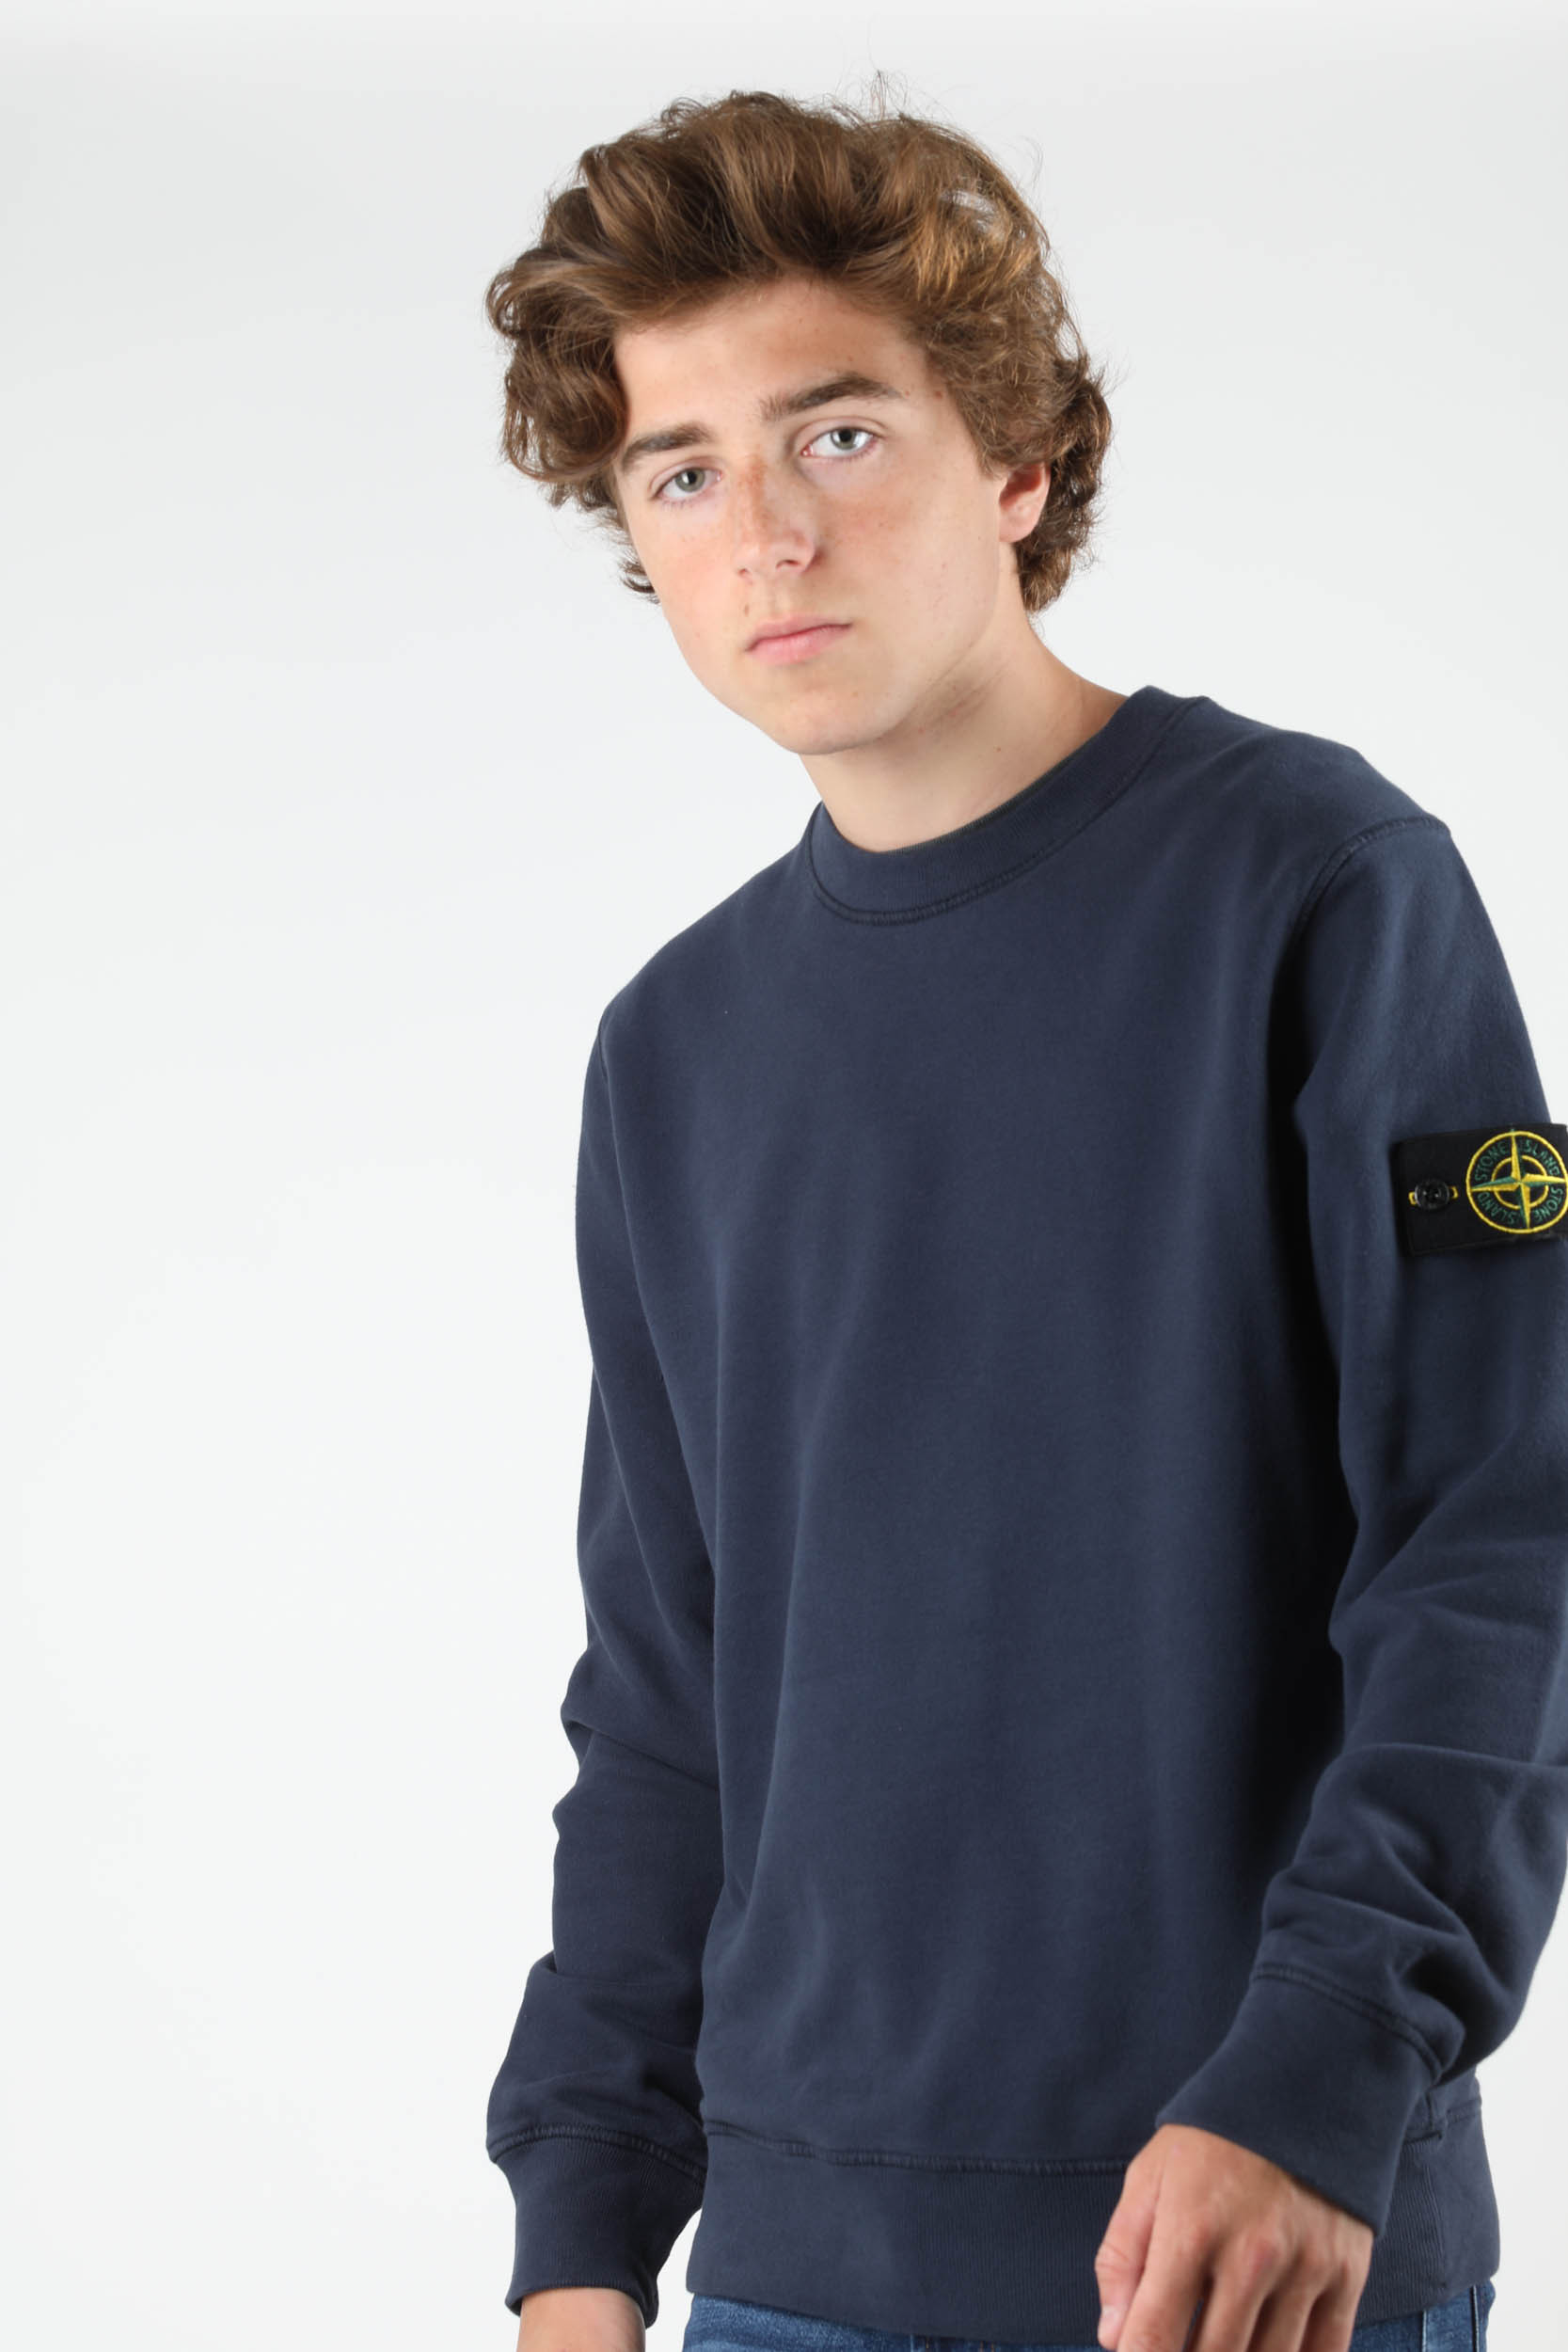 SWEAT-SHIRT STONE ISLAND MARINE 731563020-V0028